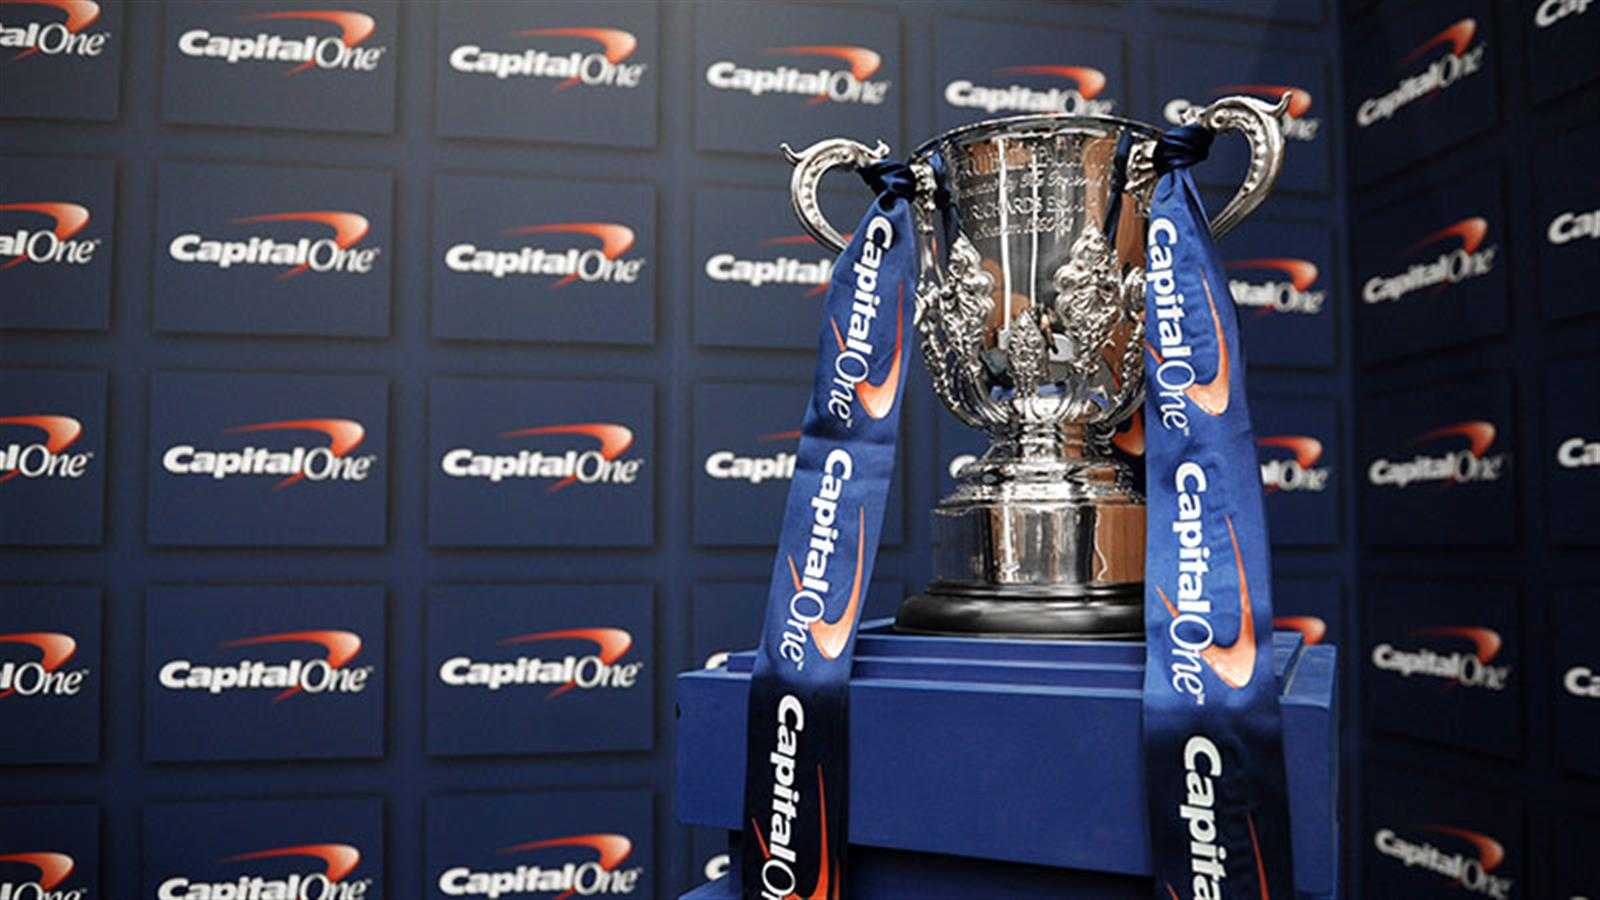 The Capital One Cup represents an opportunity for the likes of Premier League underachievers Liverpool and Tottenham to win a trophy this season